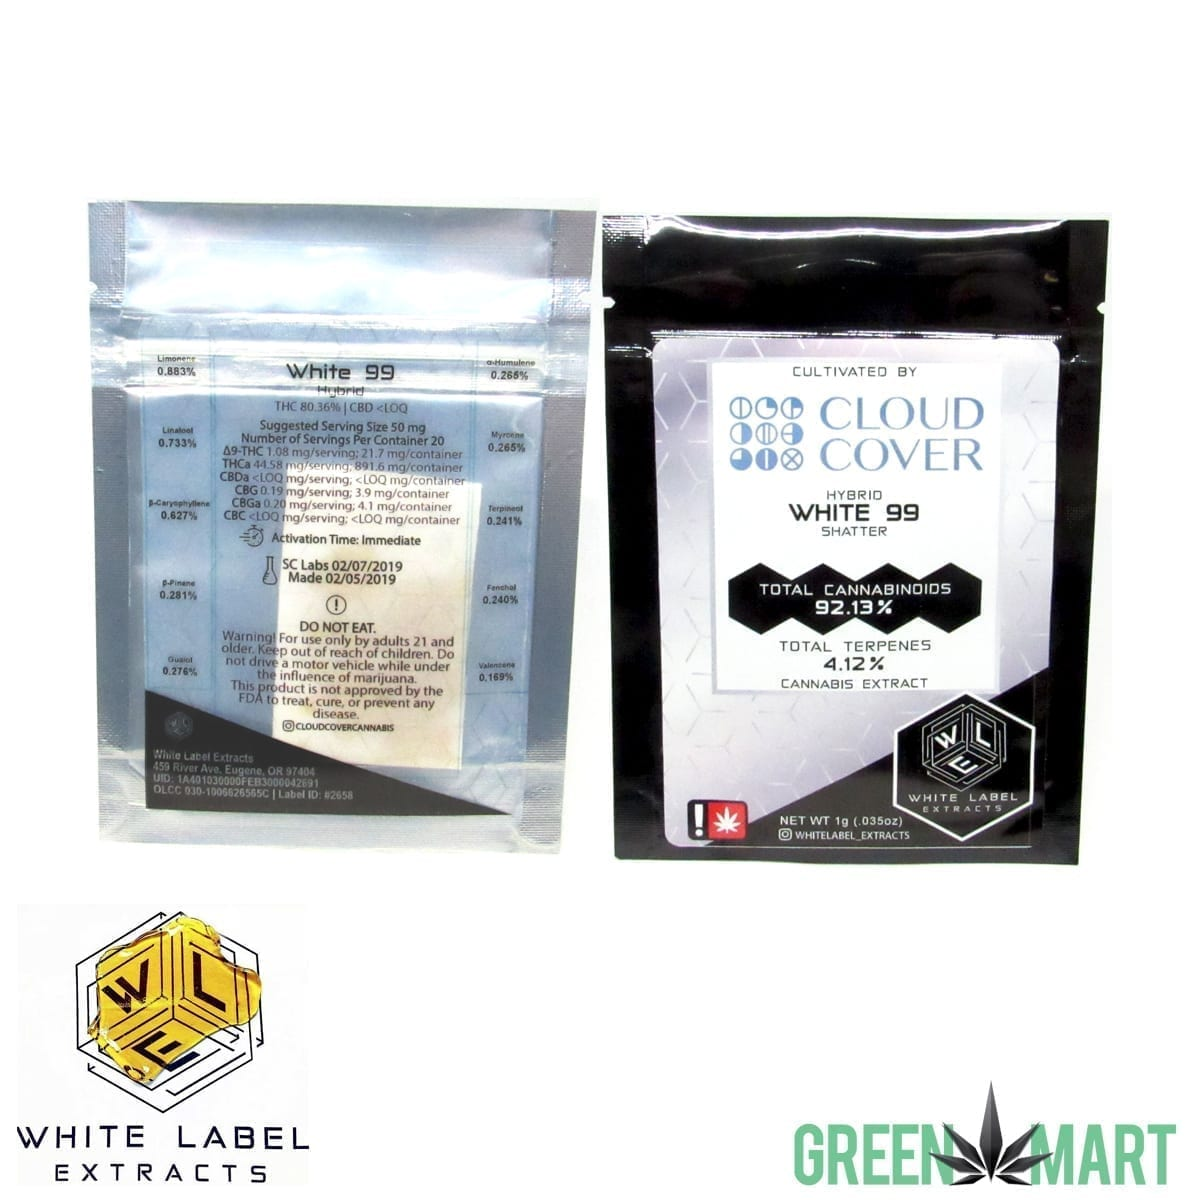 White Label Extracts - White 99